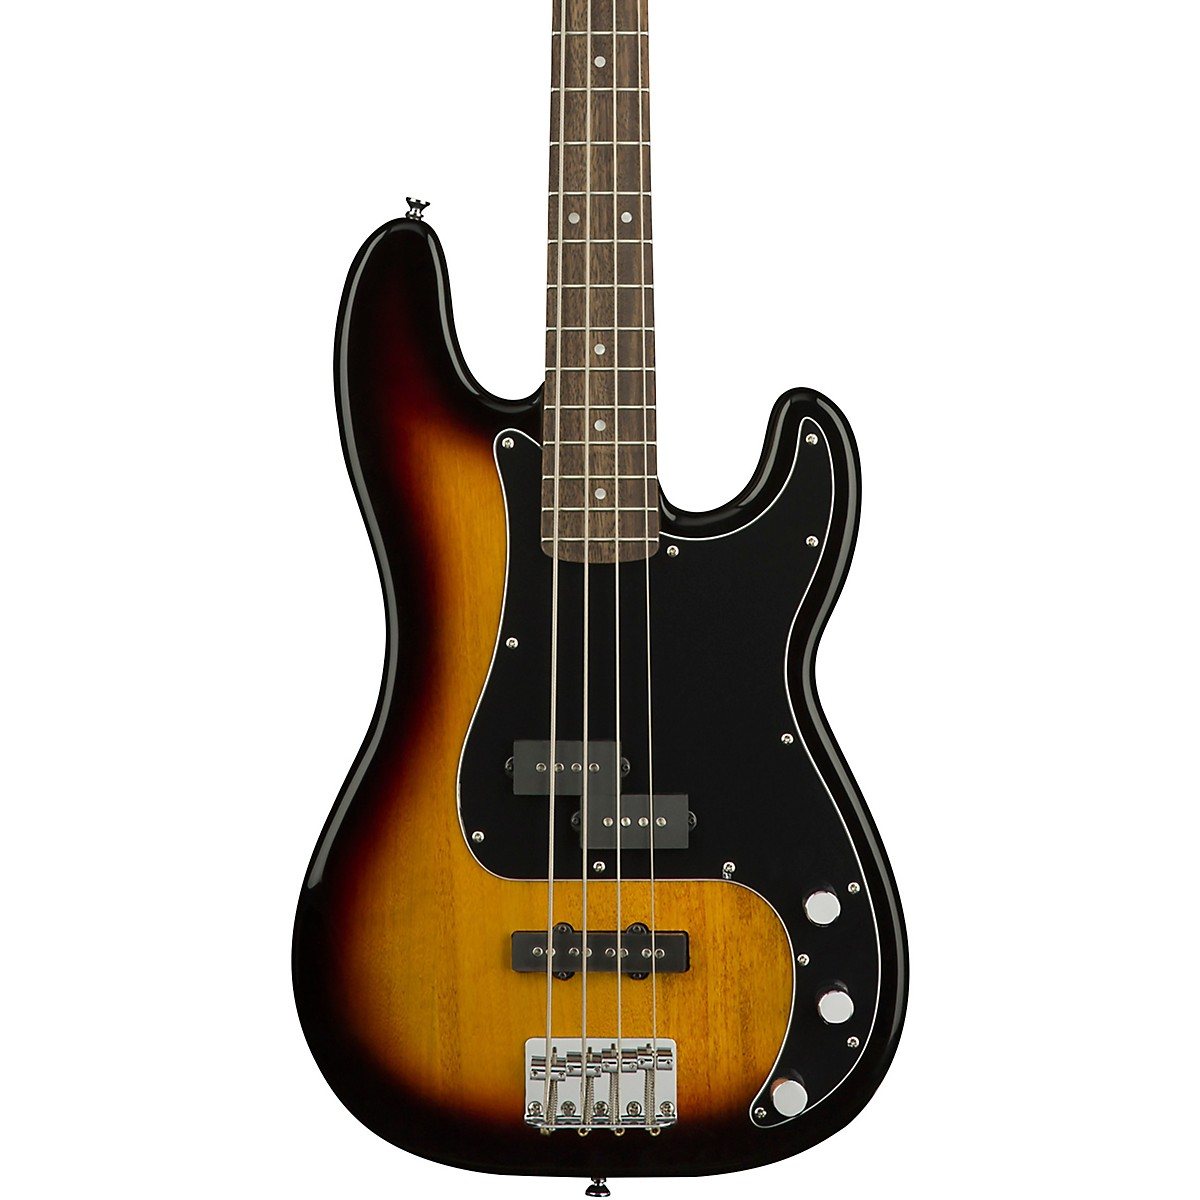 Squier Affinity Series PJ Bass Limited-Edition